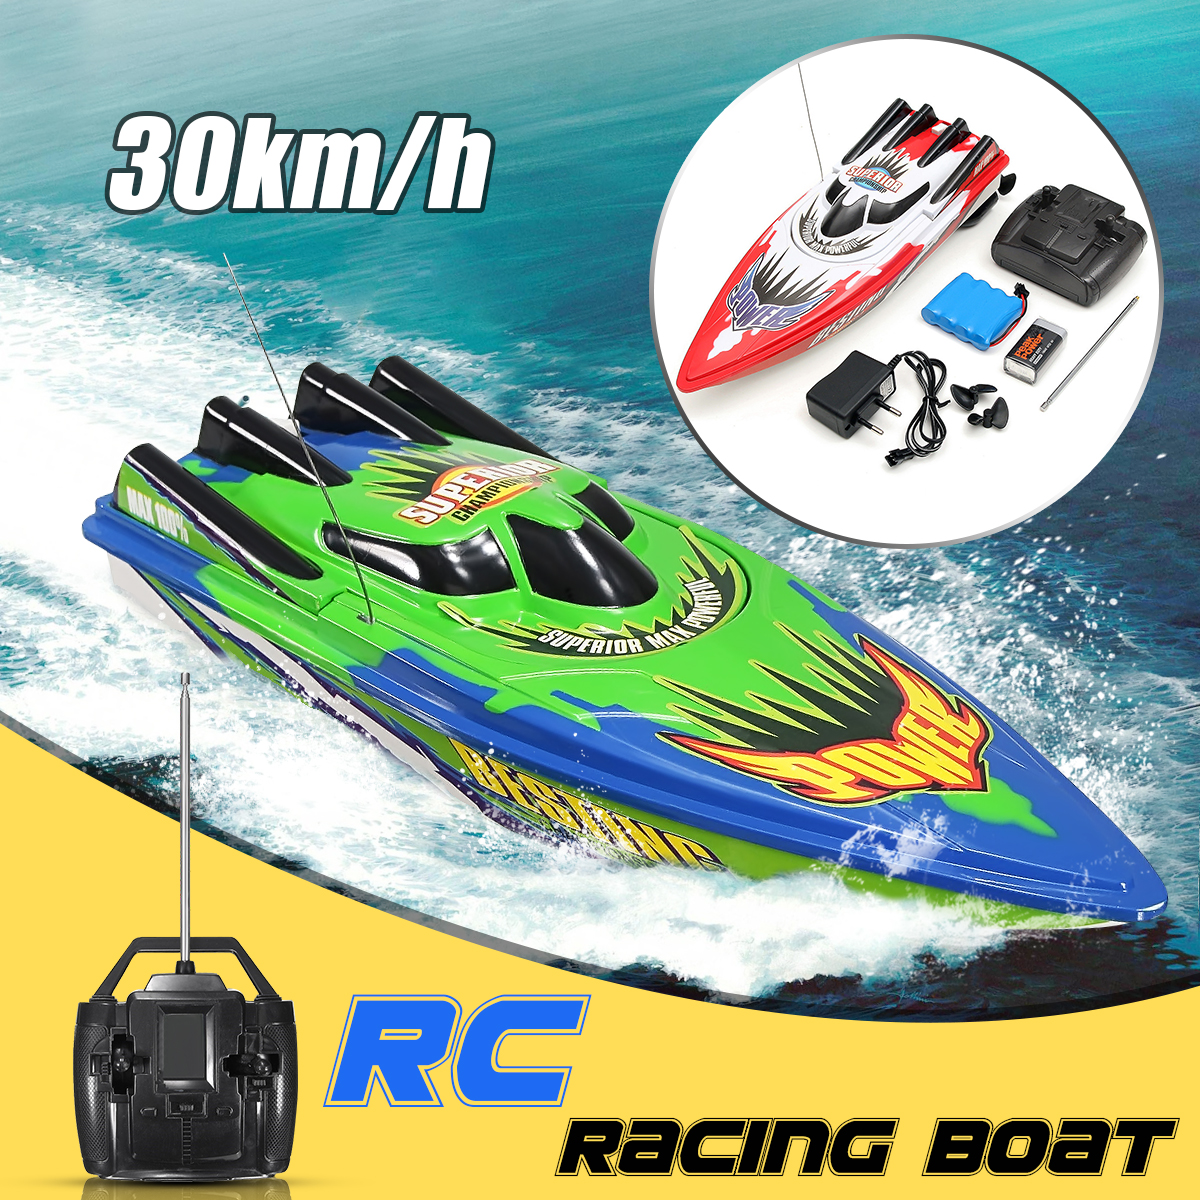 Red/Green RC Boat Radio Remote Control Twin Motor High Speed Boat RC Racing Toy Gift 33x11x9cm lcll rc boat radio remote control twin motor high speed boat rc racing toy gift for kids eu plug